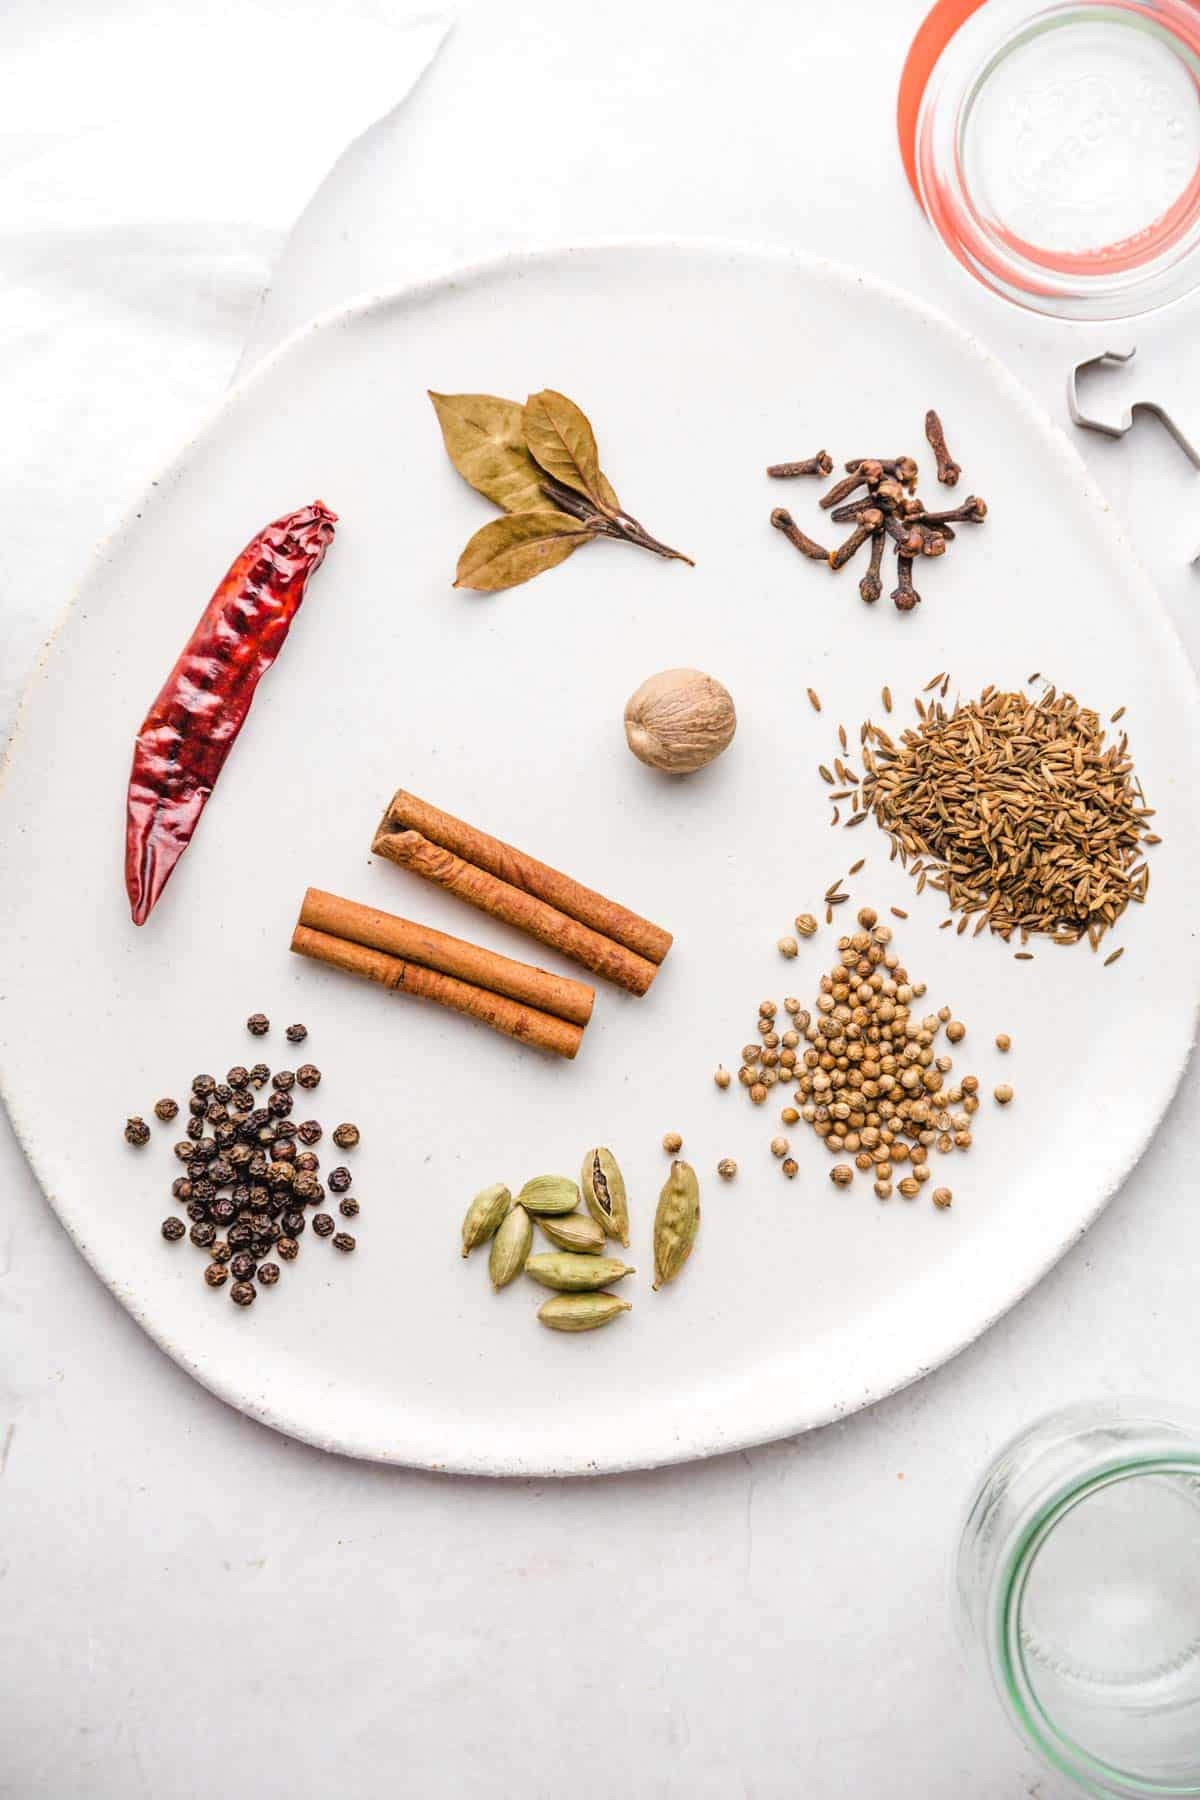 A ceramic white tray with whole spices laid out